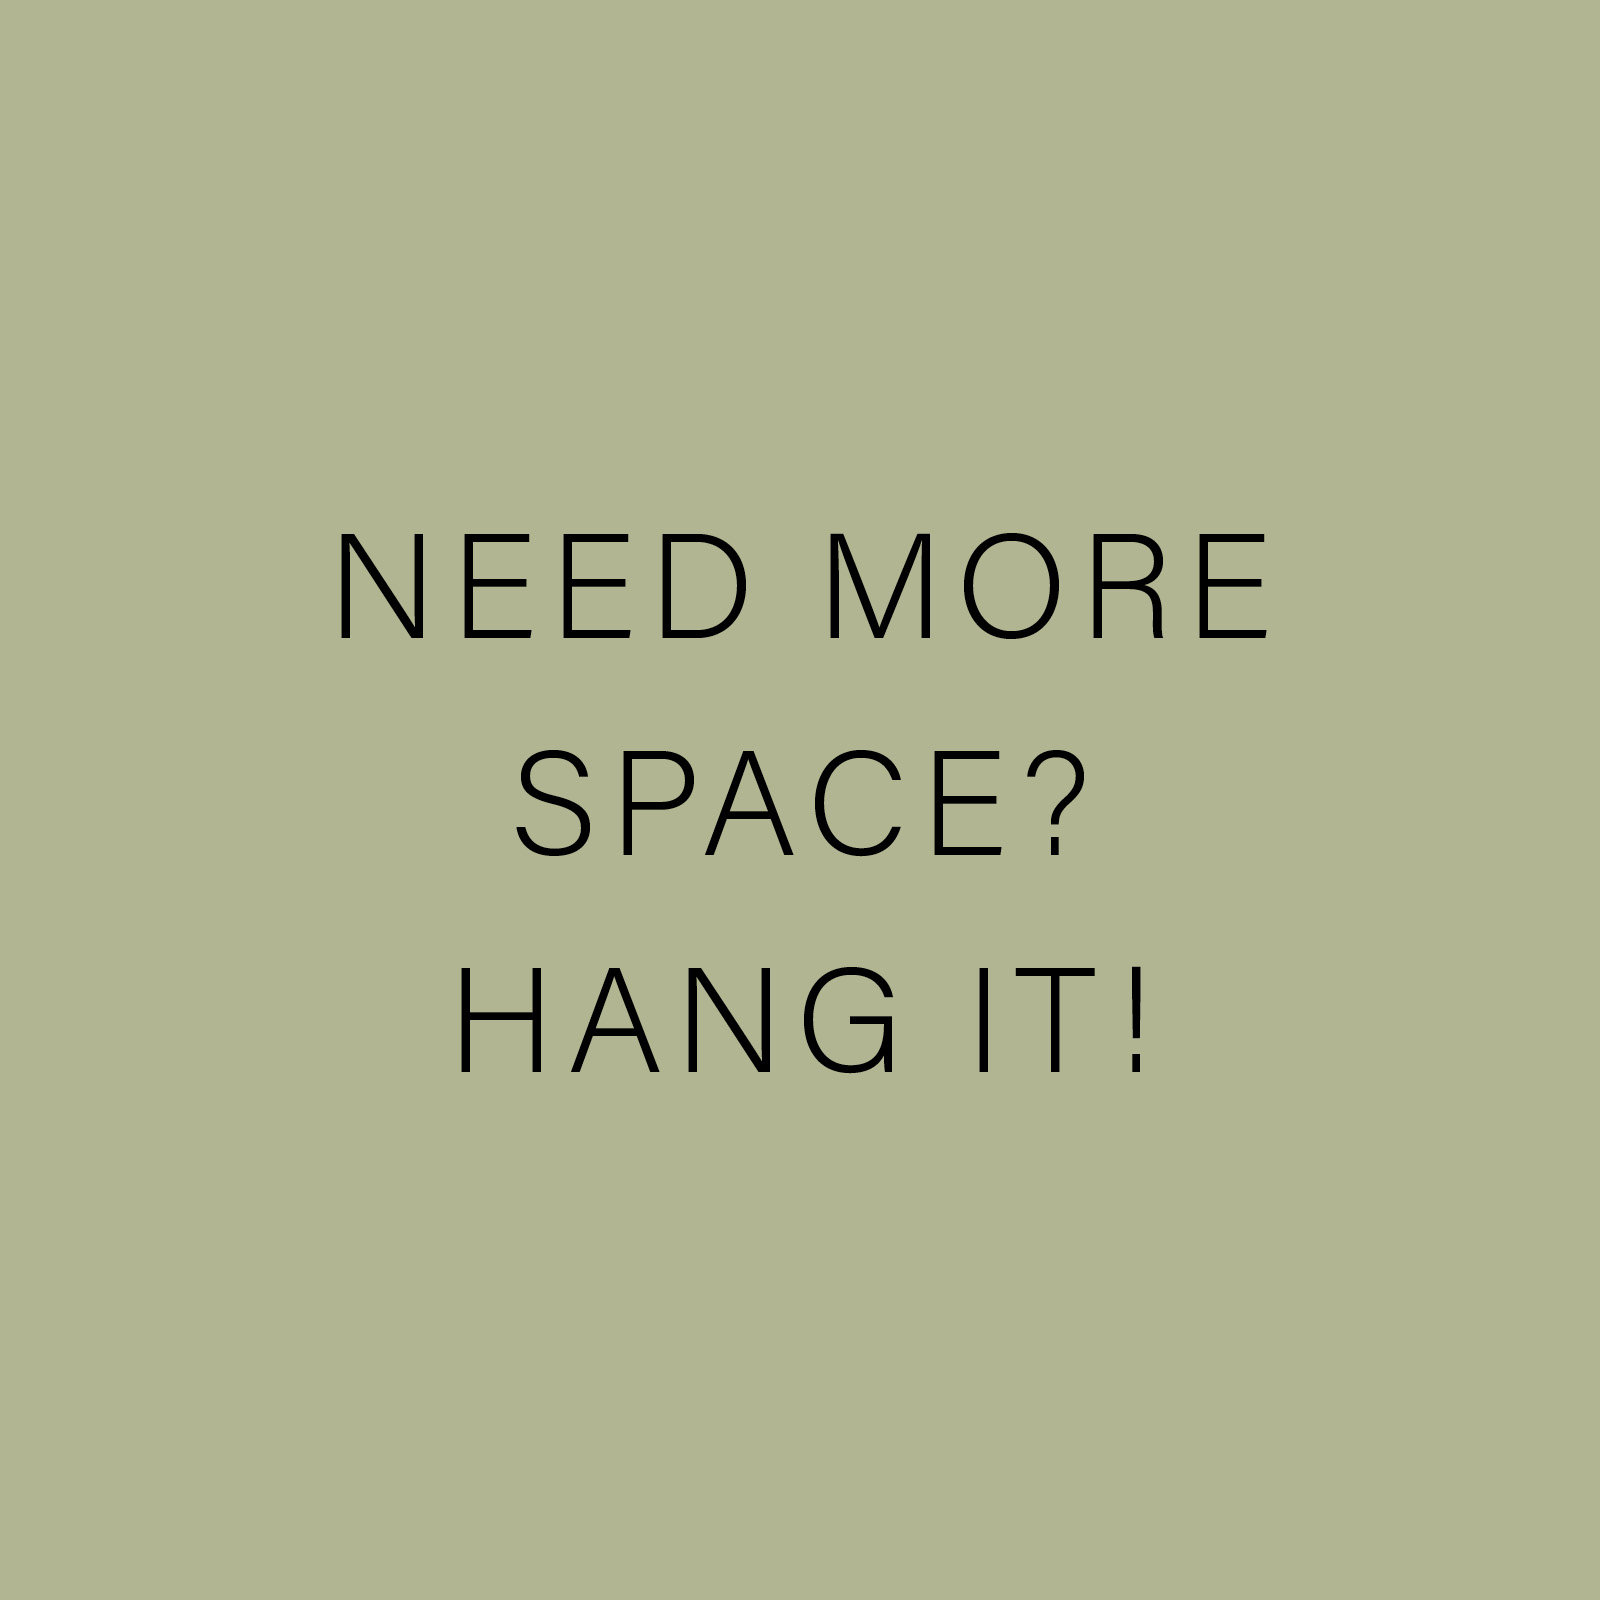 NEED MORE SPACE?  HANG IT!.jpg